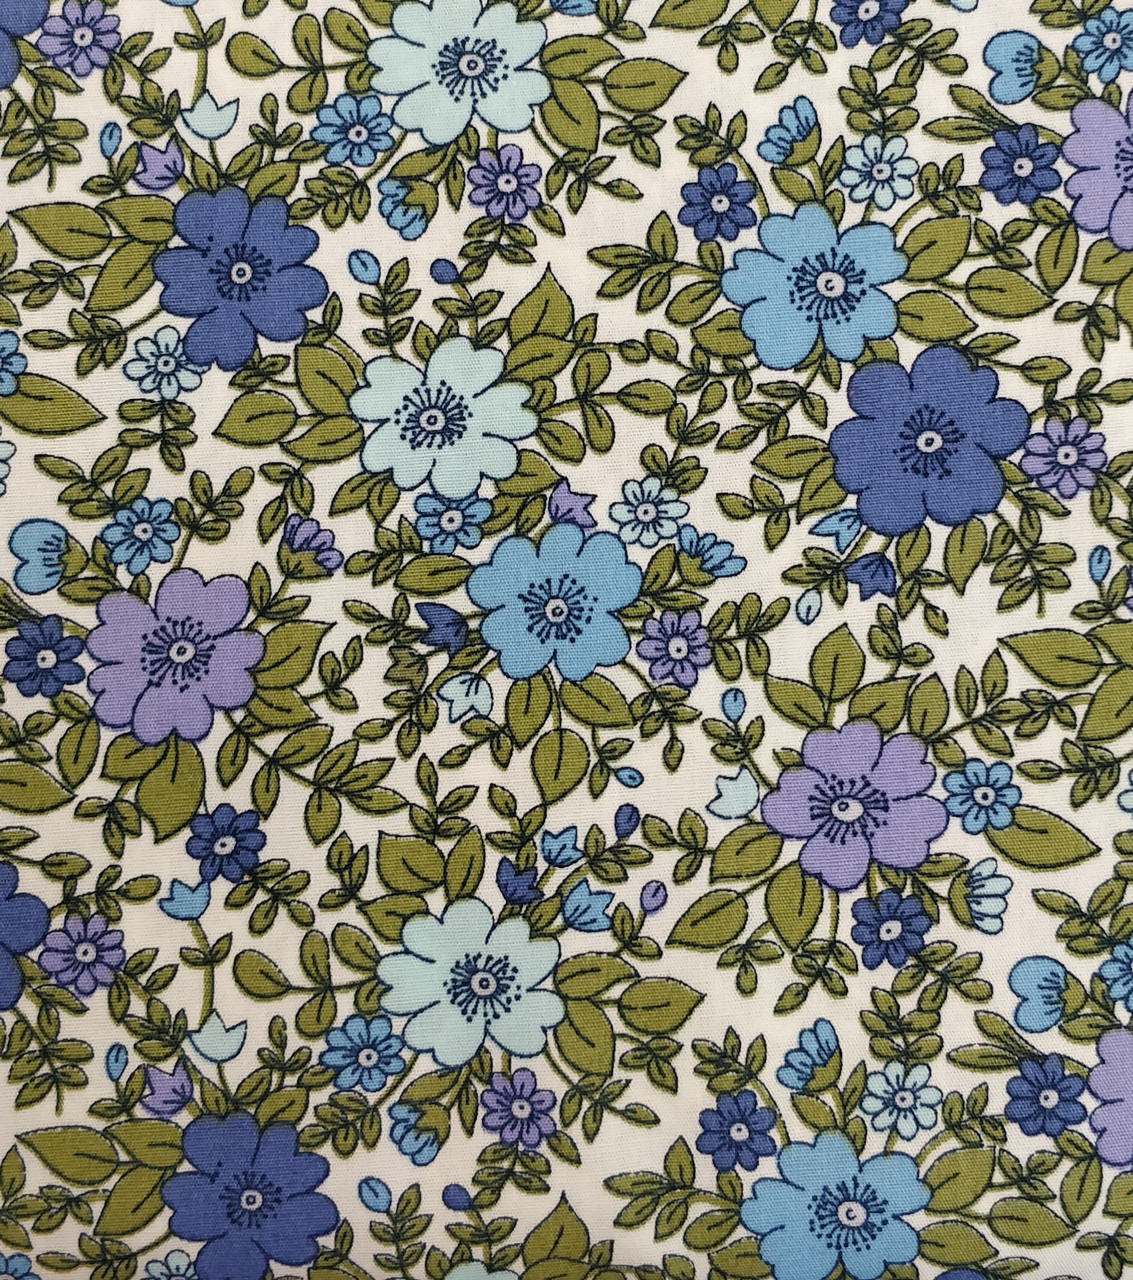 Rose & Hubble fabric in blues